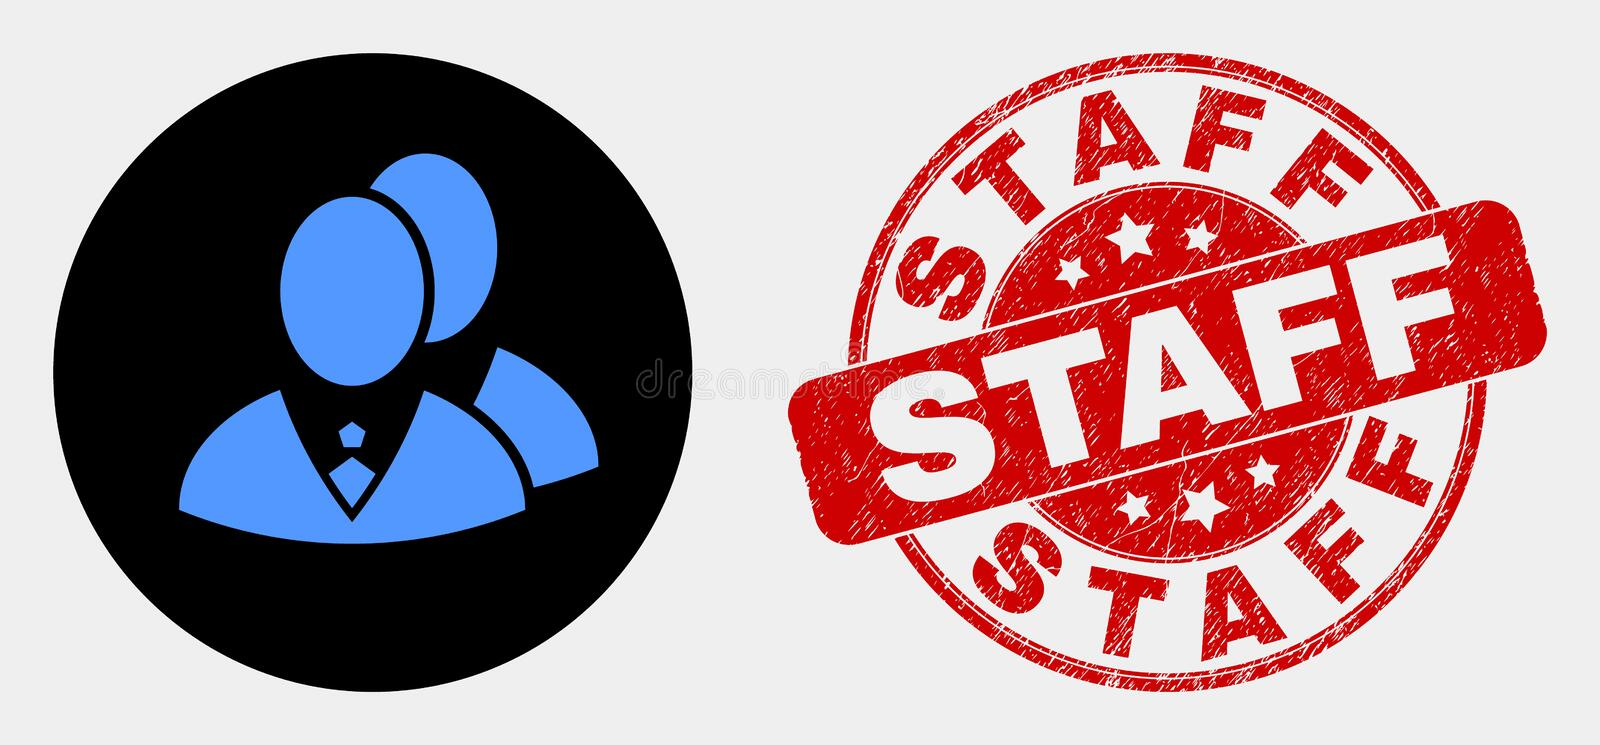 Vector Managers Icon and Grunge Staff Watermark. Rounded managers icon and Staff seal. Red round scratched seal stamp with Staff caption. Blue managers icon on stock illustration